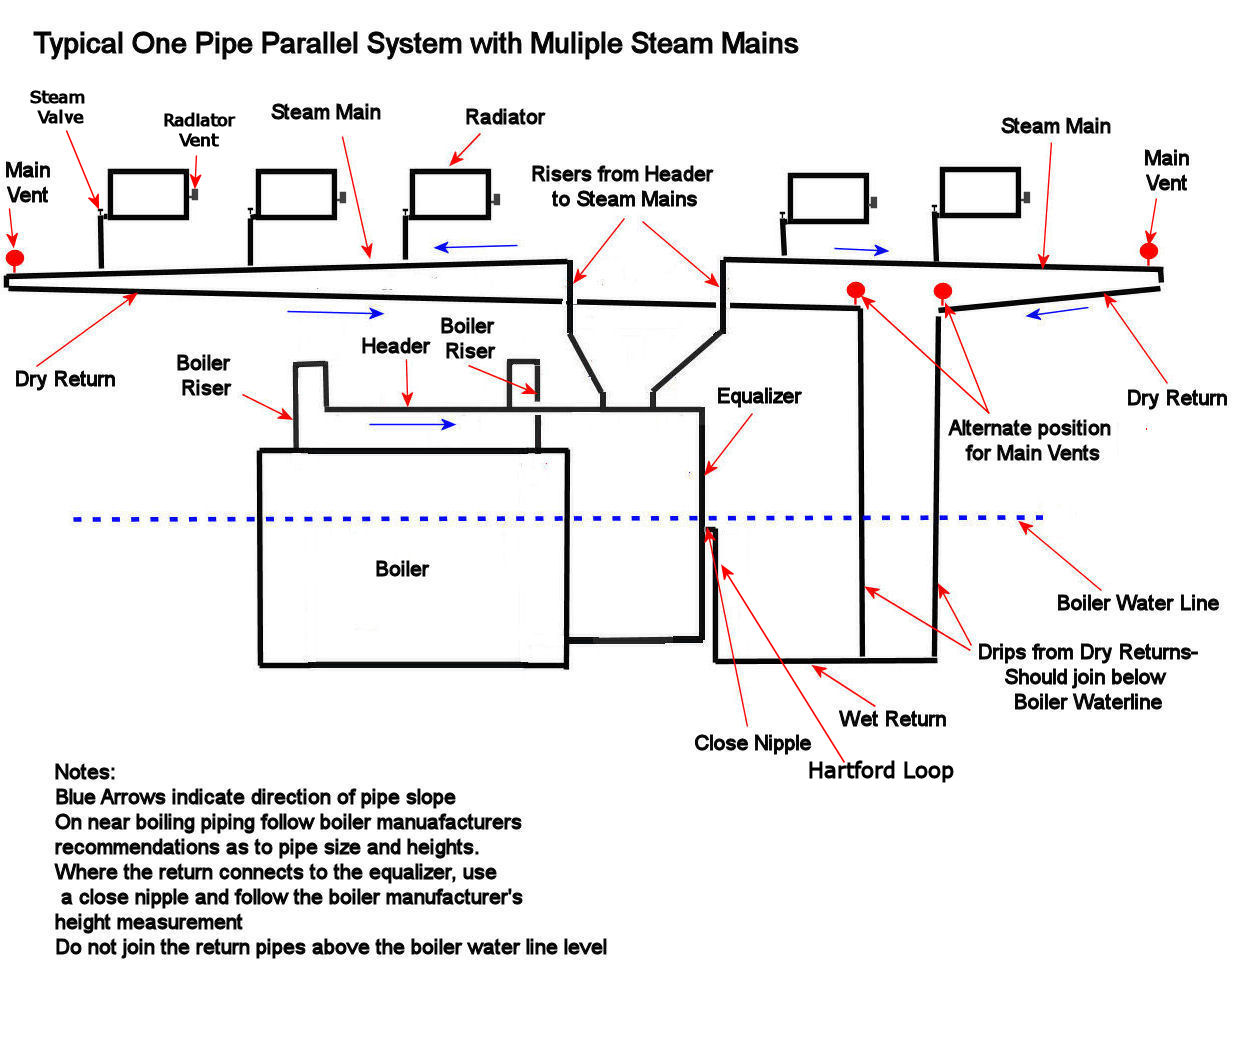 honeywell aquastat l4006a wiring diagram reticular formation vision pro 8000 library 1 pipe parallel steam multiple mains gandul 45